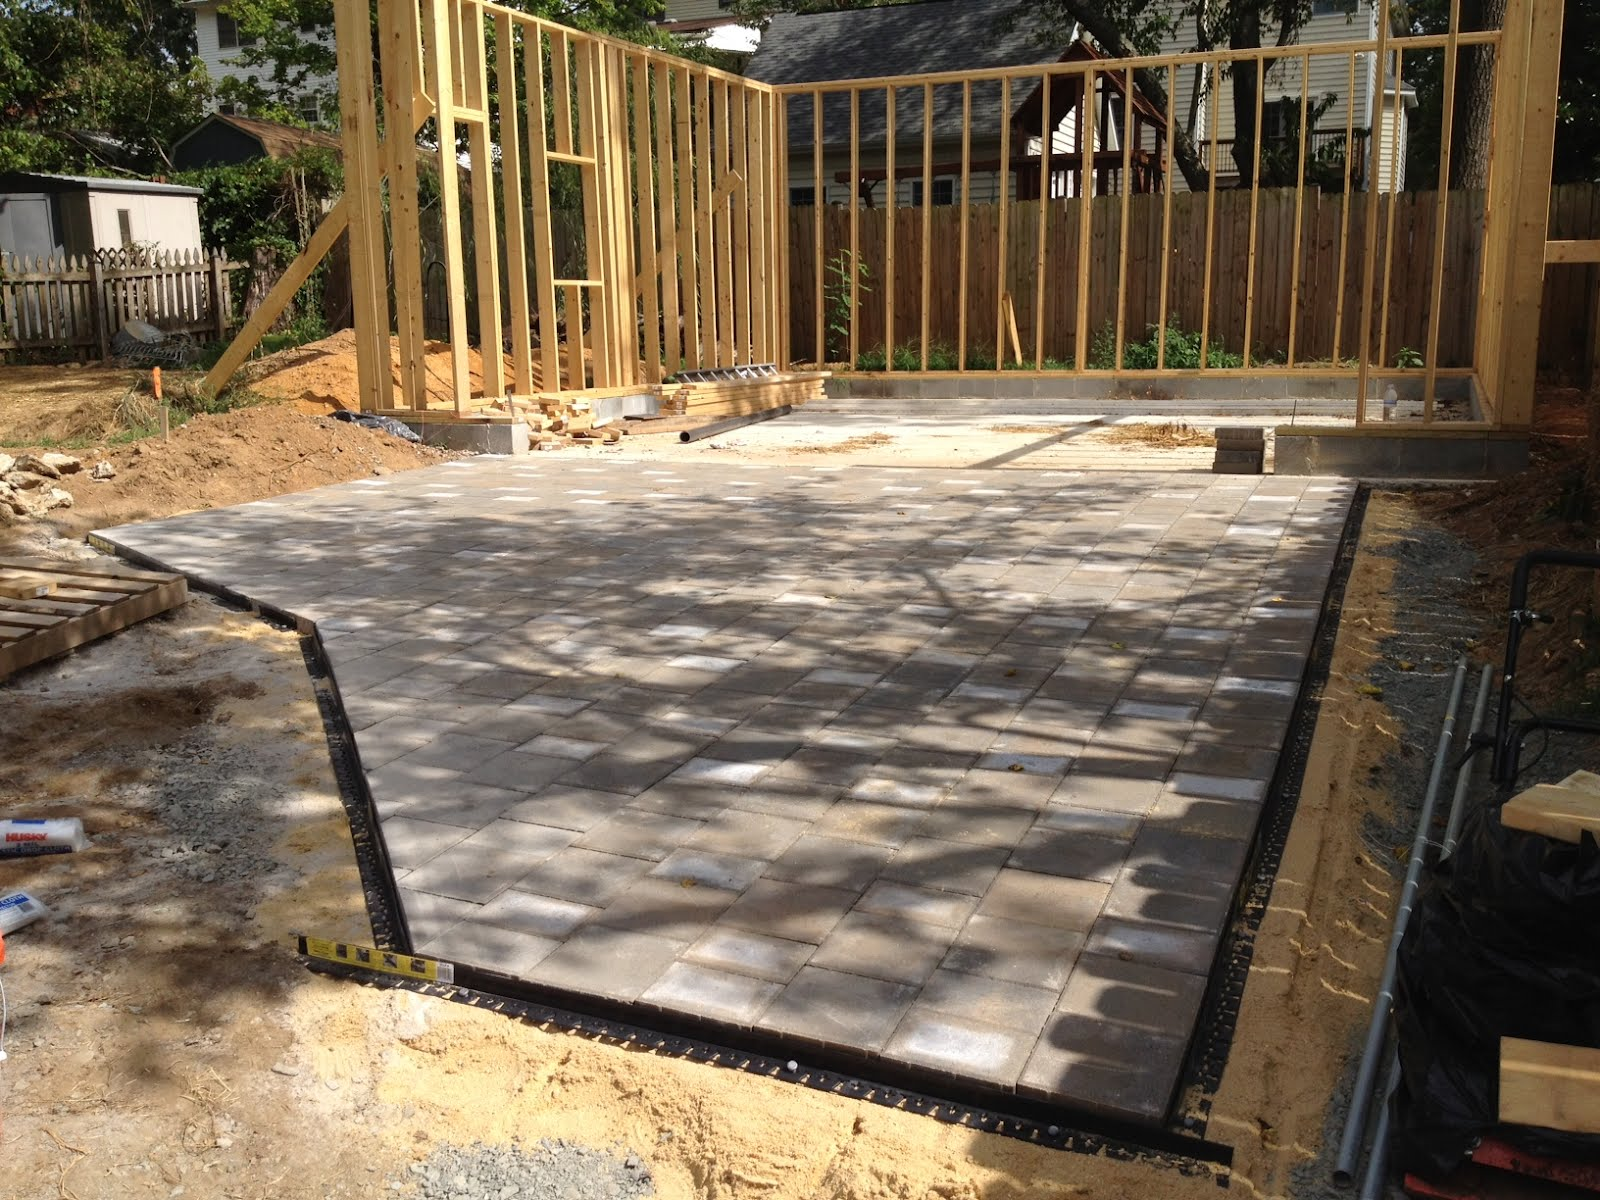 We Spent Another Long Day In The Backyard But It Paid Off In A Finished  Parking Pad! As Usual, The Finish Work Took Nearly As Much Time As The Bulk  Of The ...